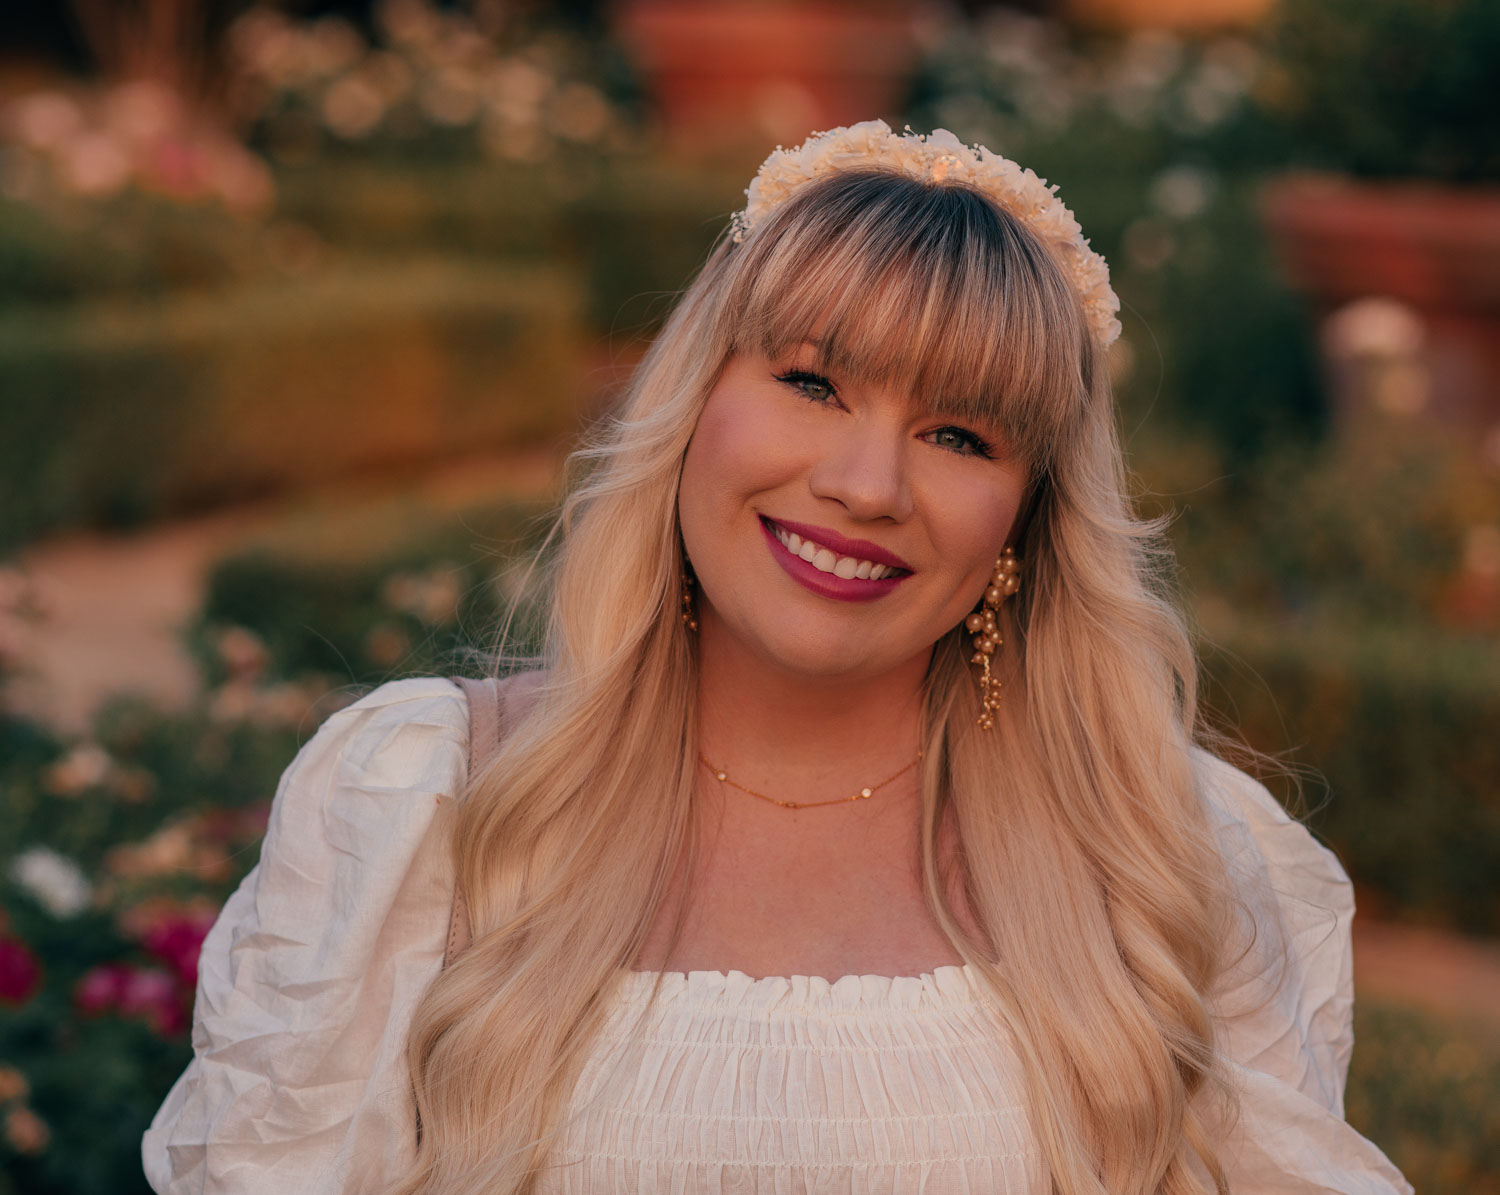 Feminine Fashion Blogger Elizabeth Hugen of Lizzie in Lace shares a cottagecore outfit idea including this white puff sleeve dress from Chicwish, dainty gold jewelry and floral headband